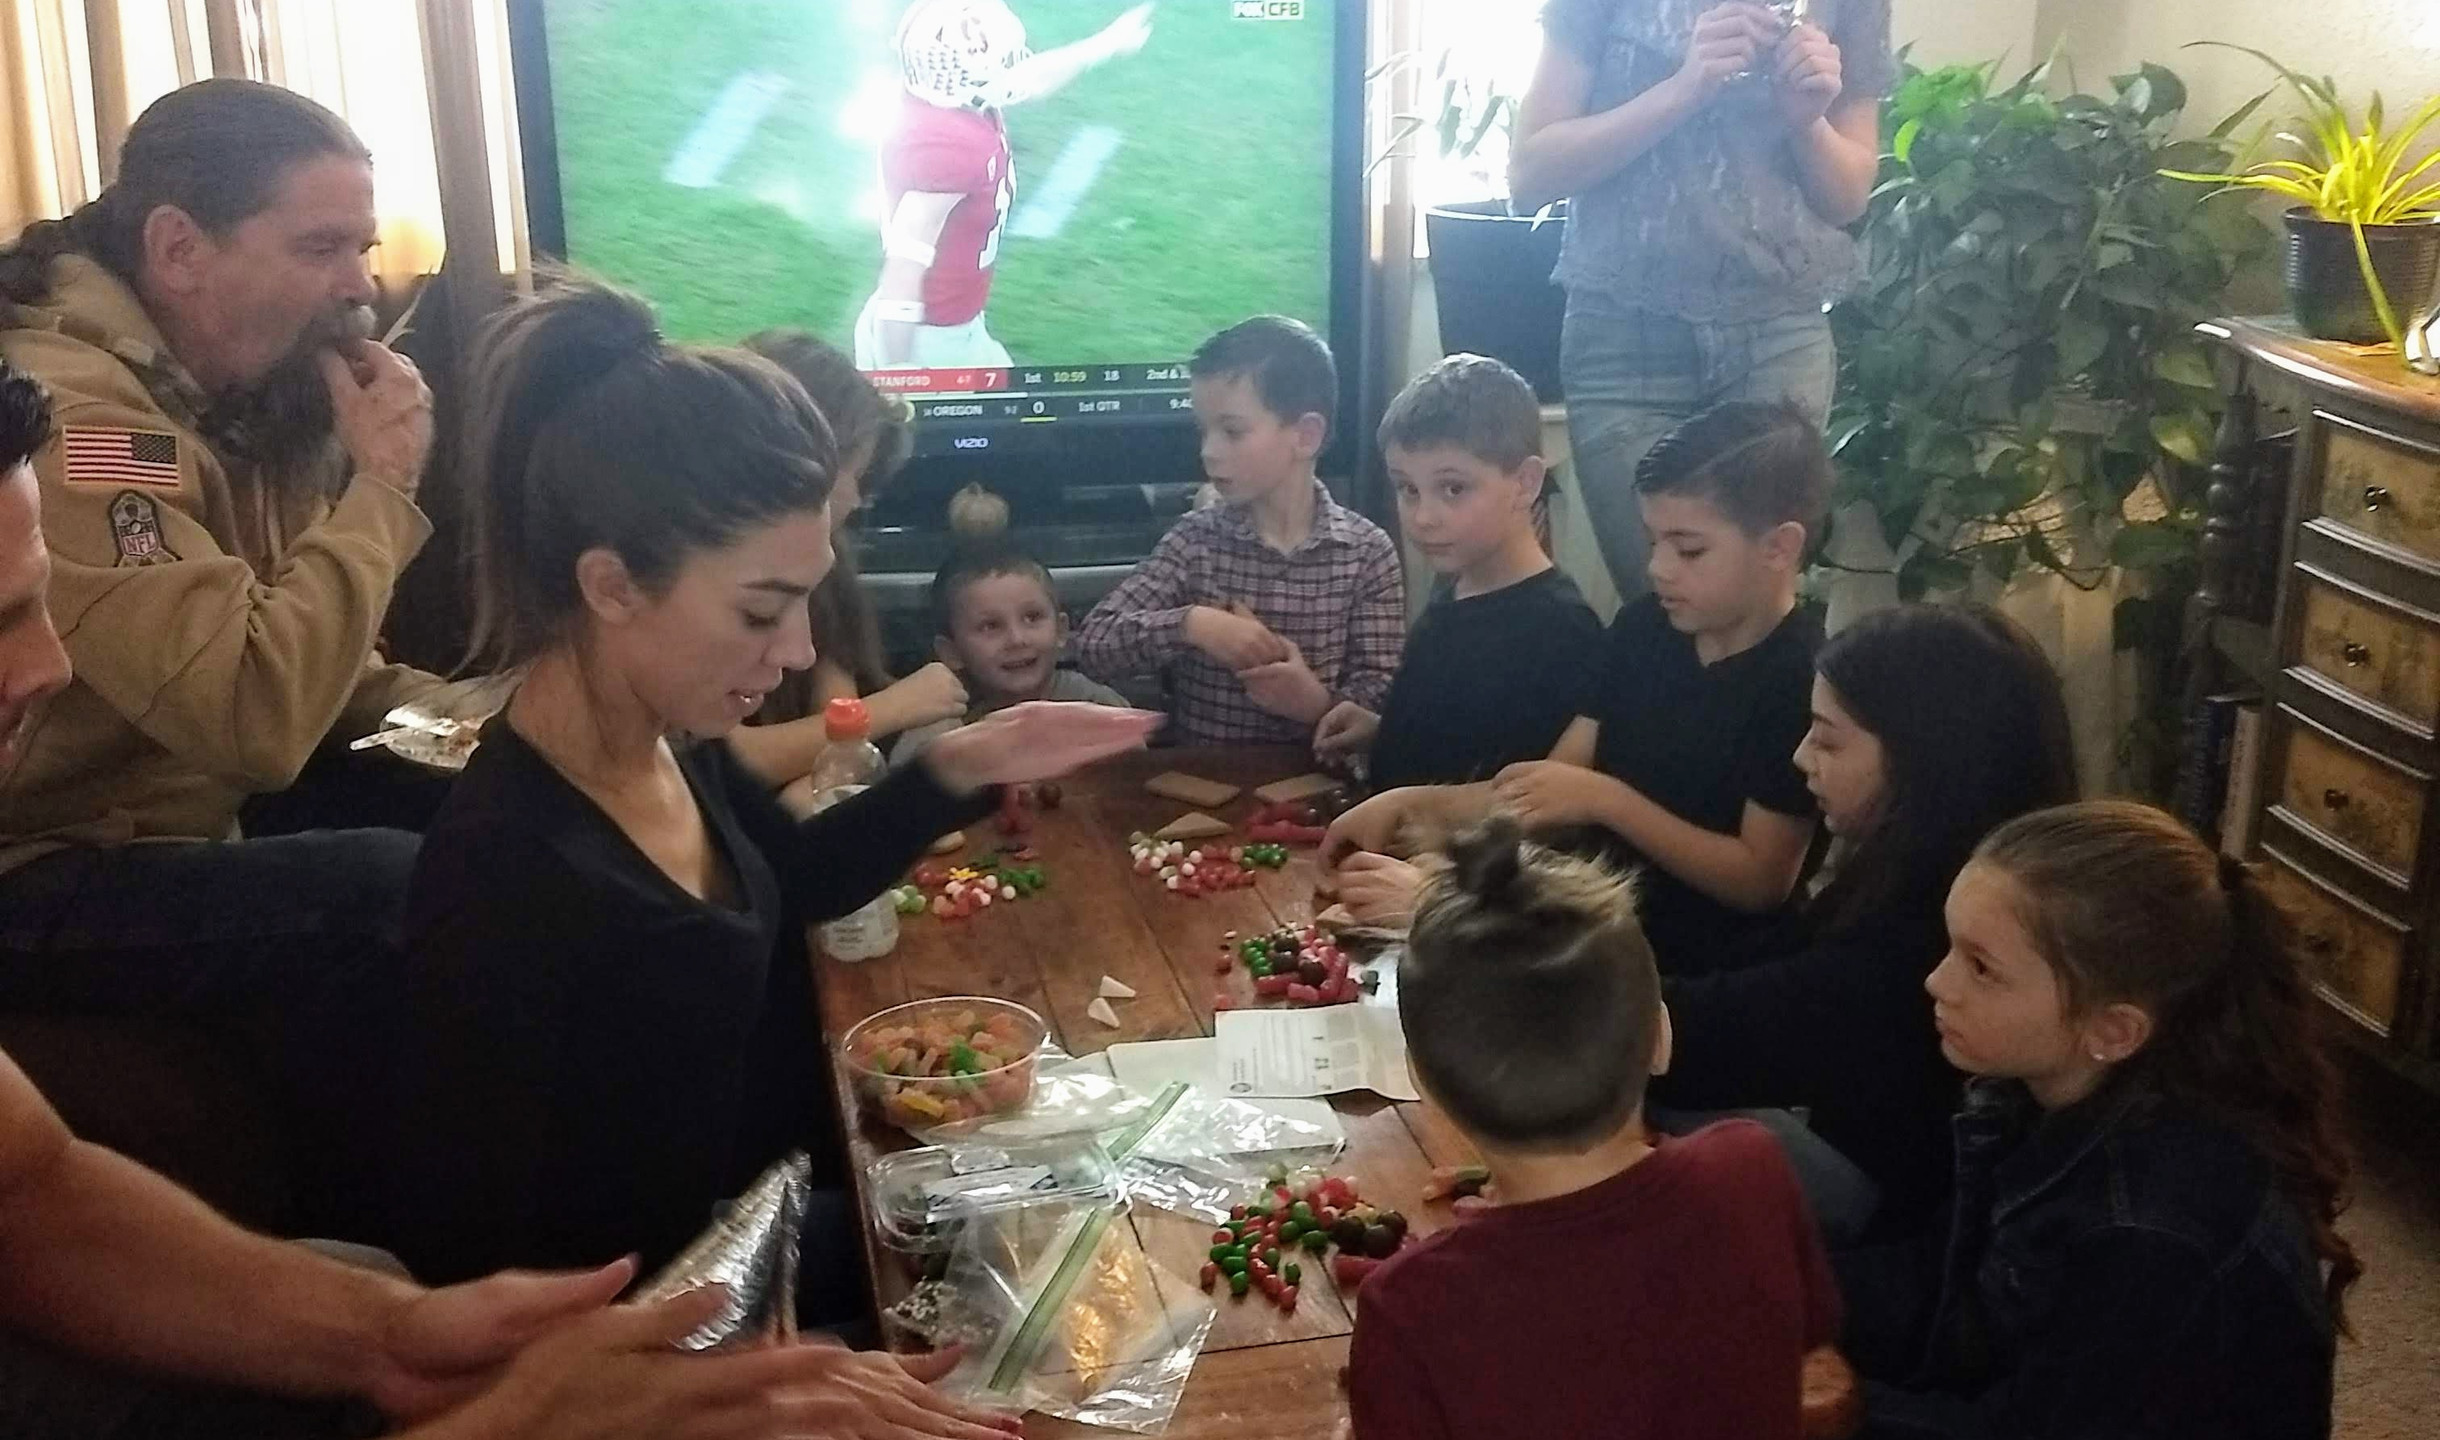 The kids making gingerbread houses!